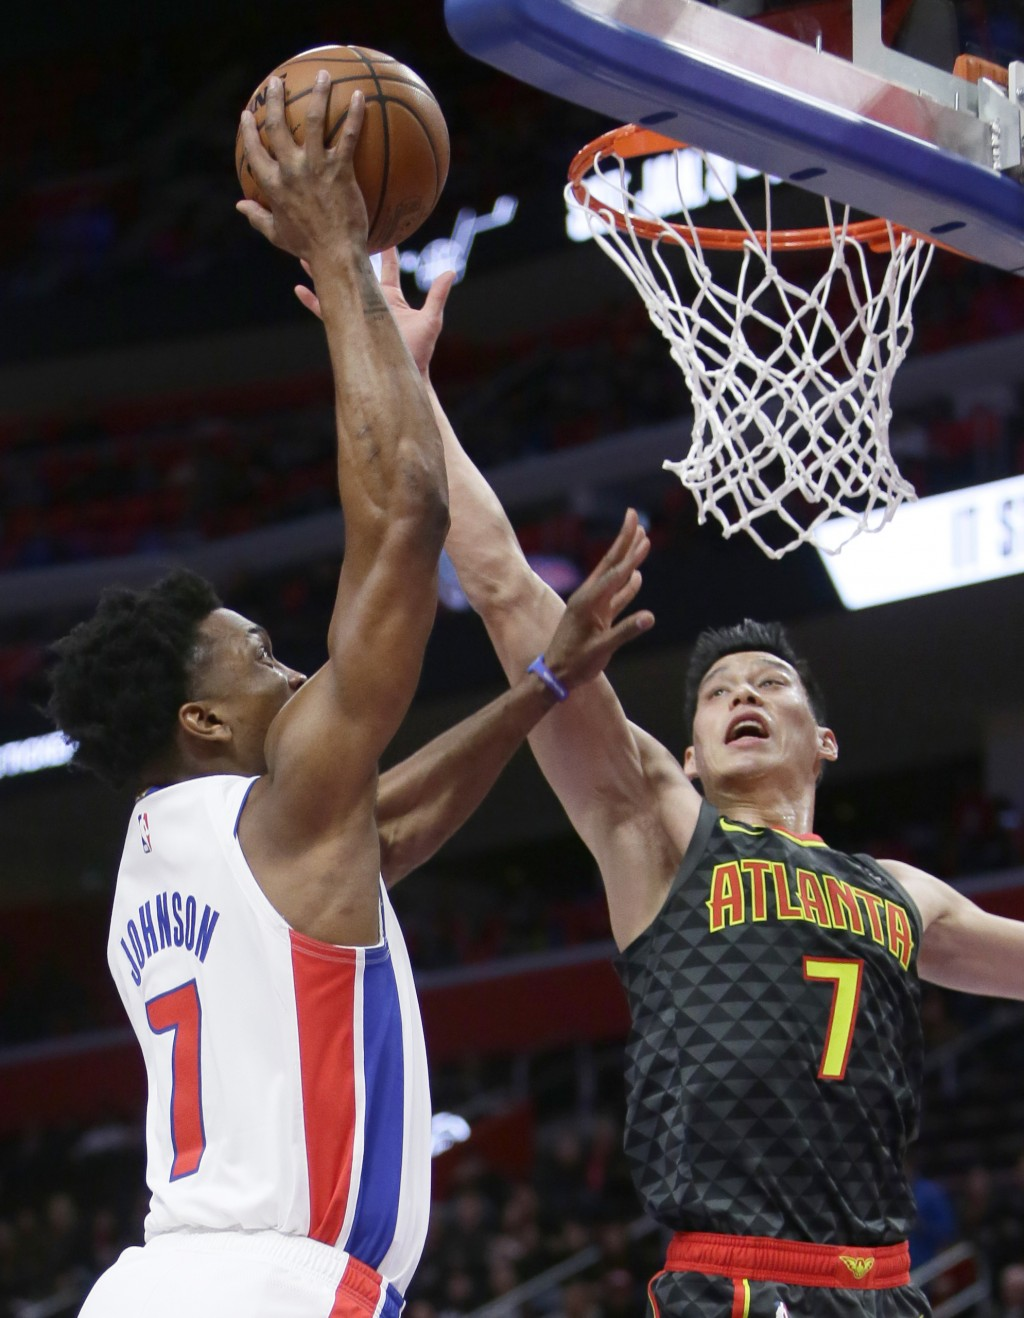 Atlanta Hawks guard Jeremy Lin, right, defends against a shot by Detroit Pistons forward Stanley Johnson, left, during the first half on an NBA basket